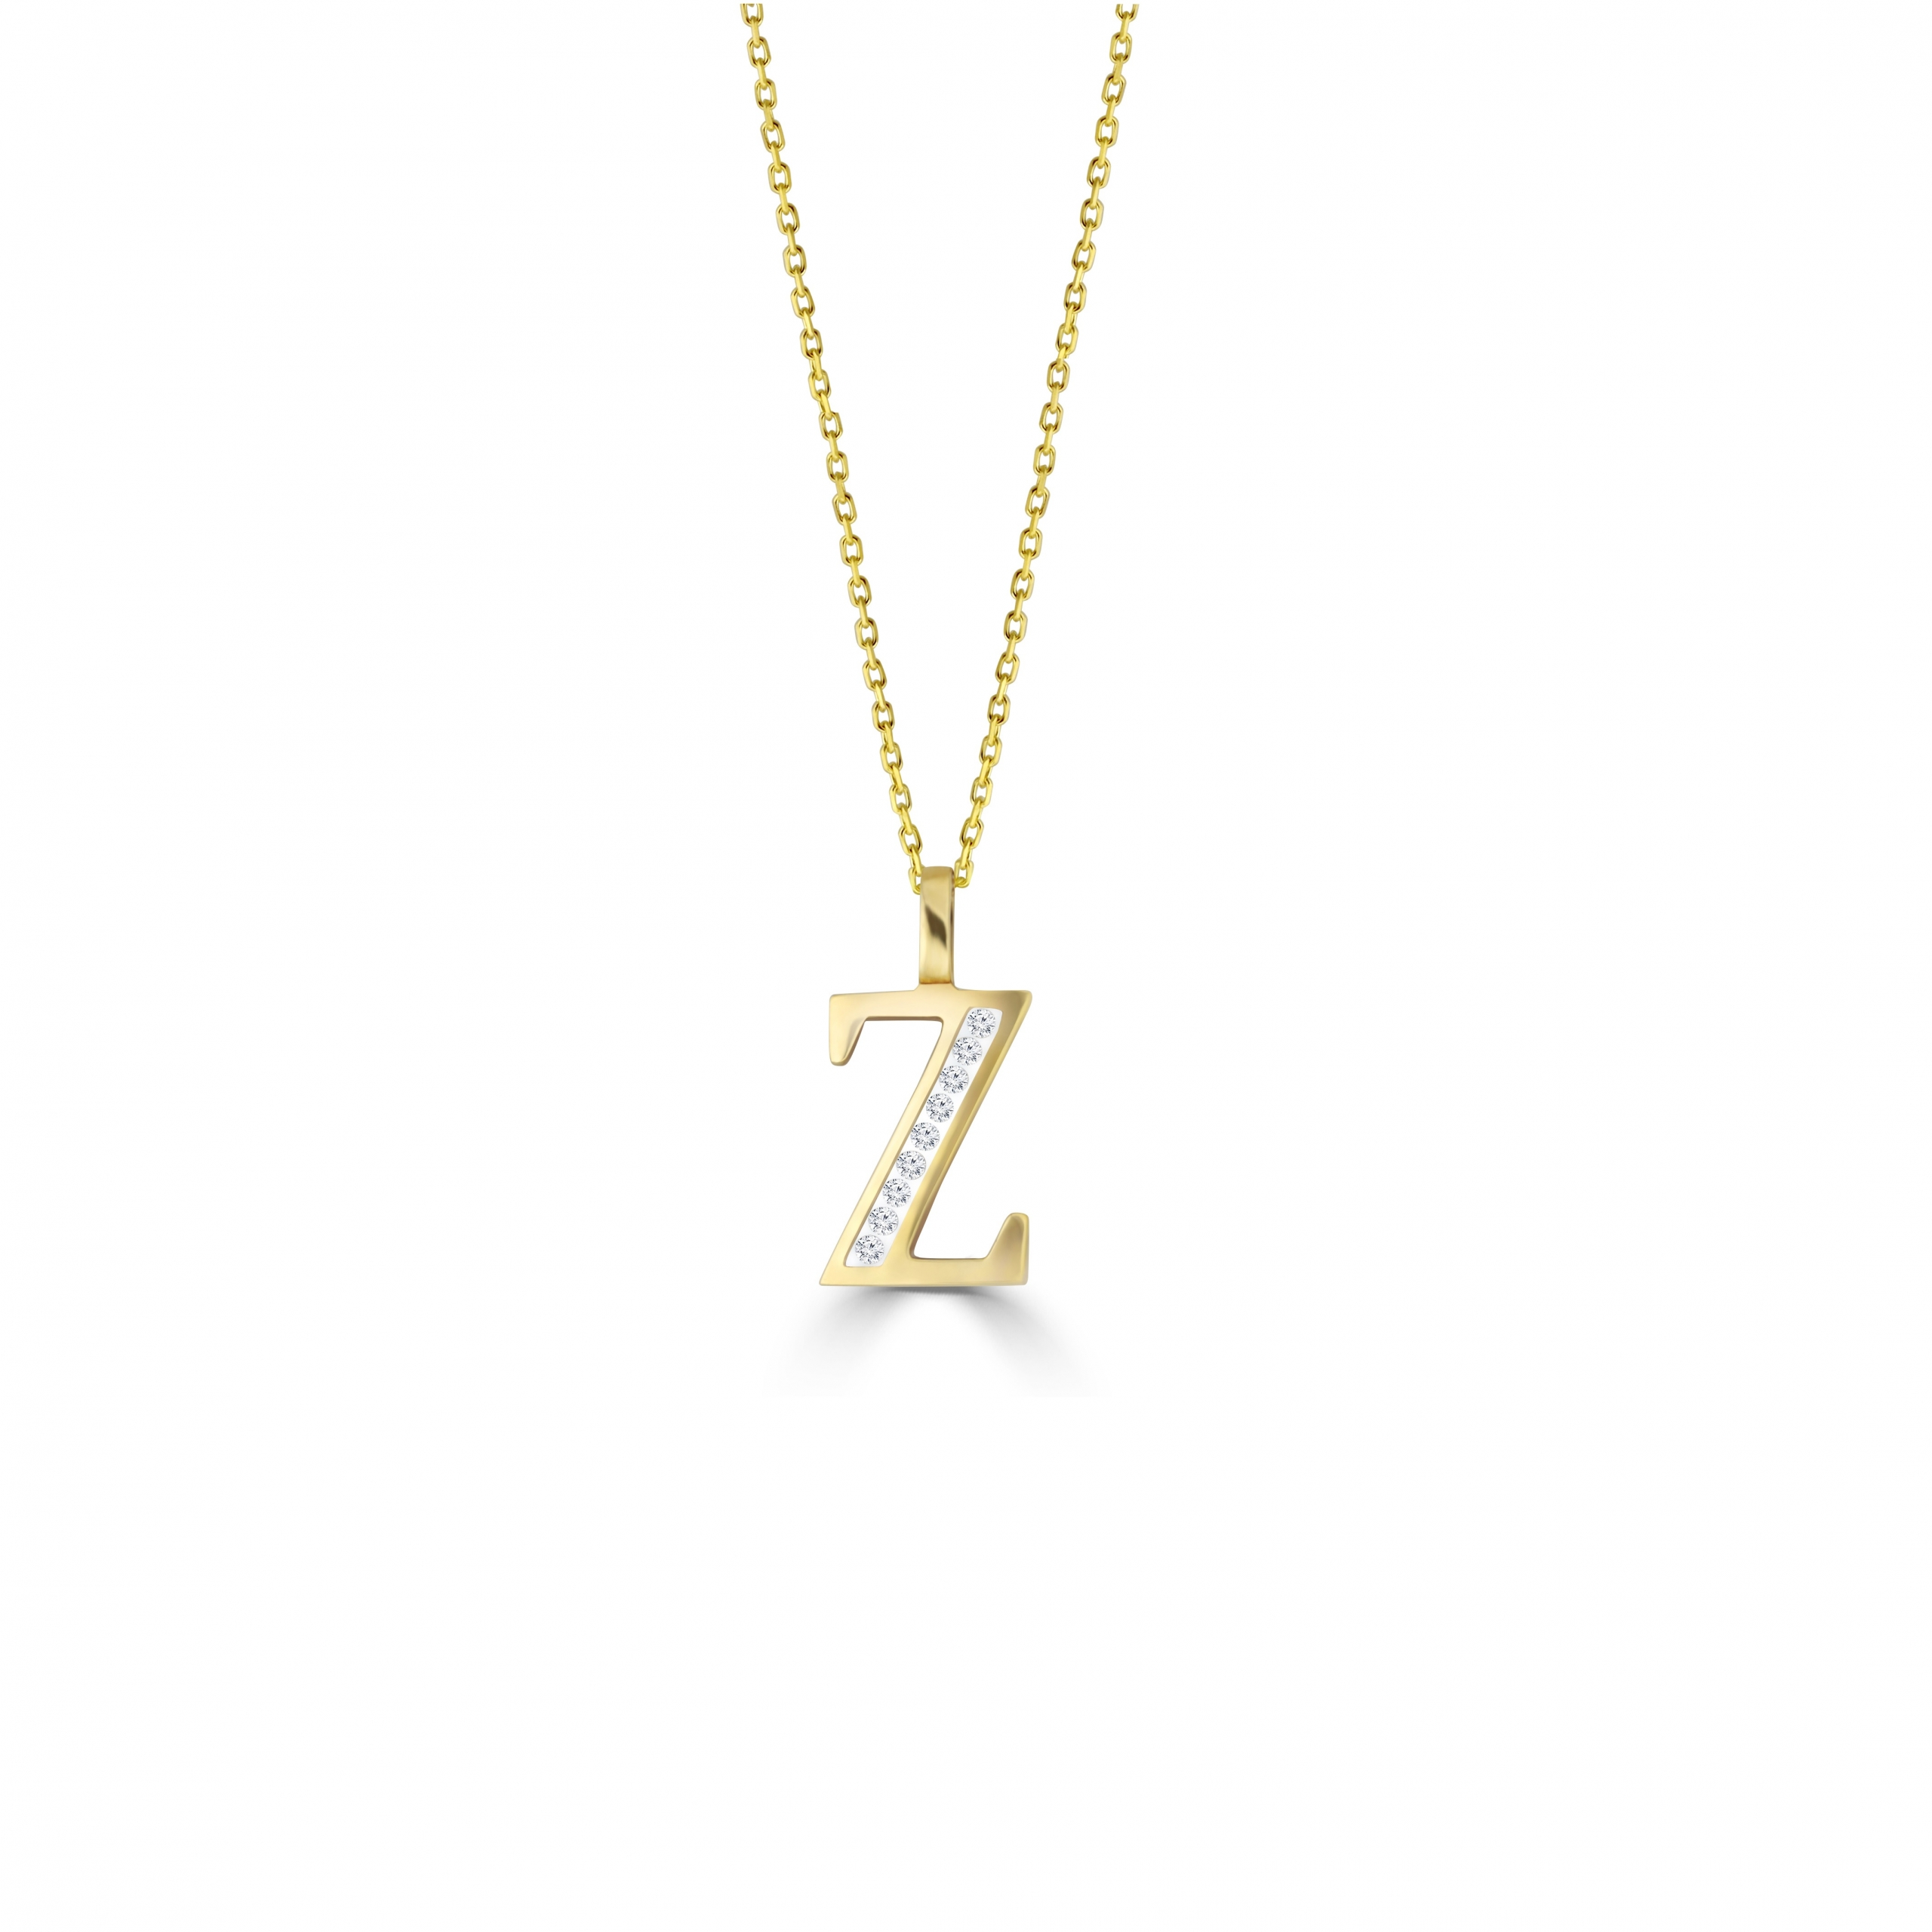 Z' Alphabet Pendant chain with Diamonds